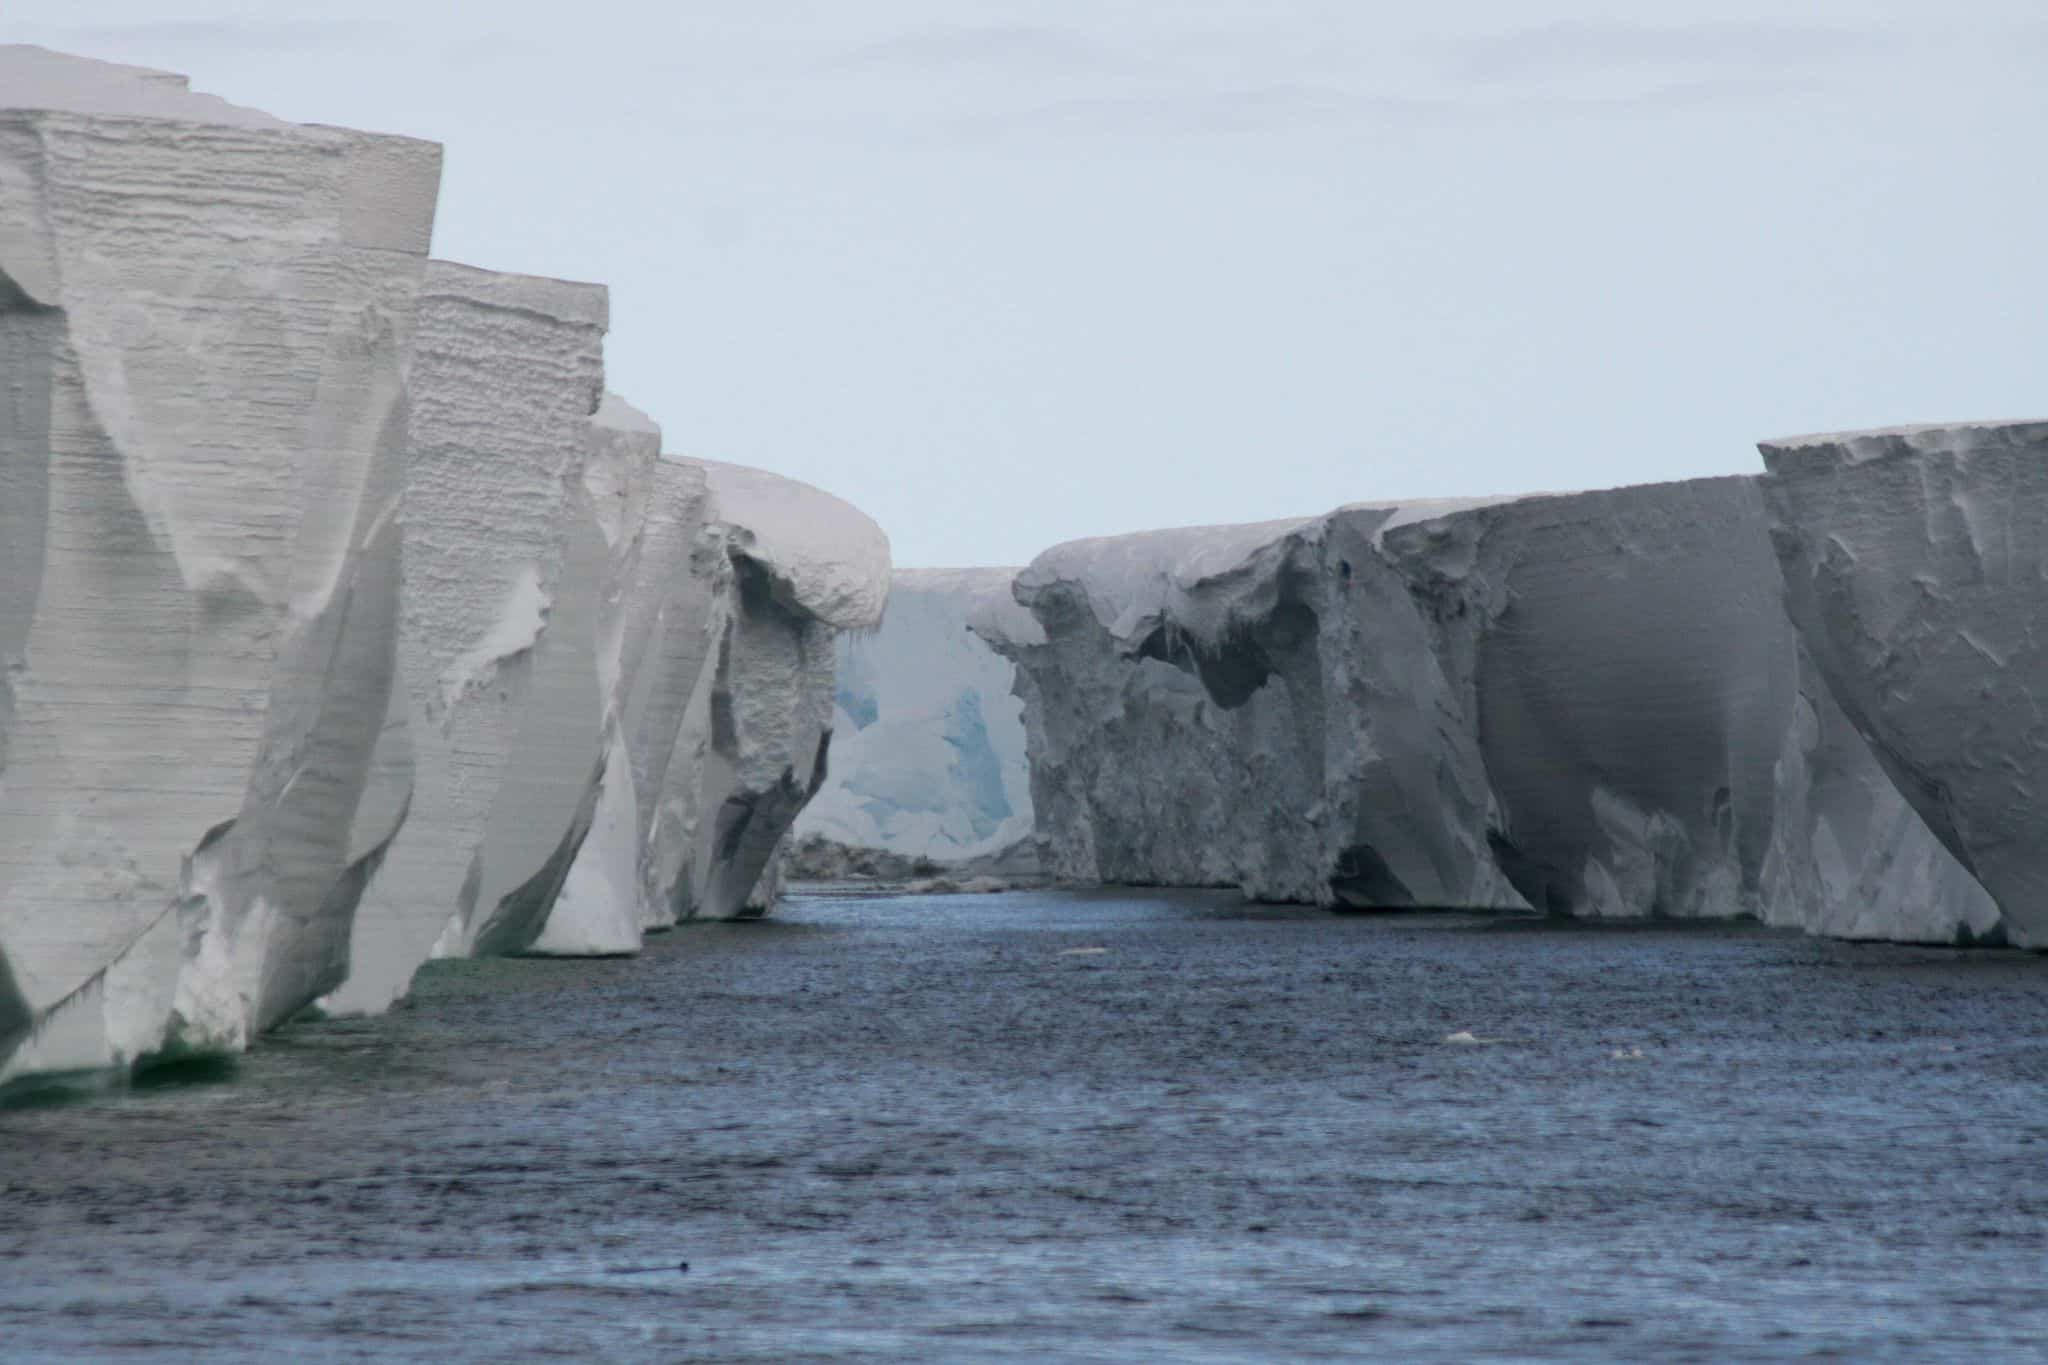 https://commons.wikimedia.org/wiki/File:Ross_Ice-Shelf.jpg